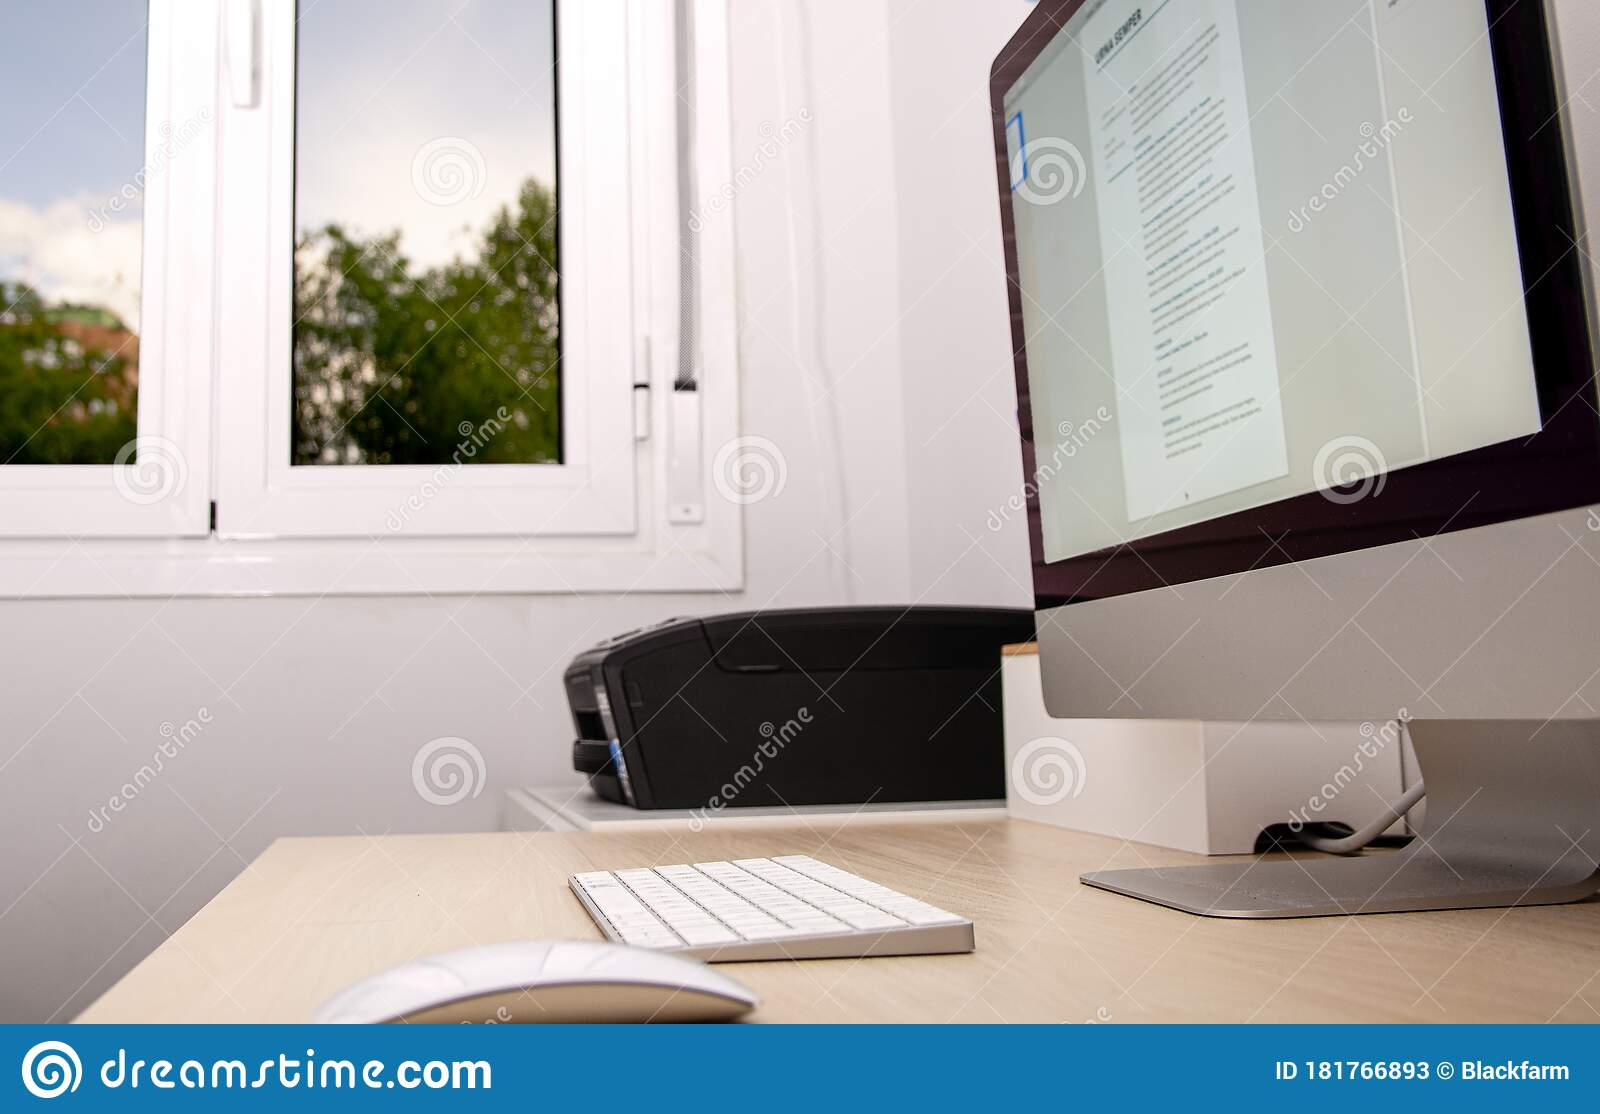 Home Office For Teleworking With A Window And A Nice Background Outside Stock Image Image Of Architecture Confinement 181766893